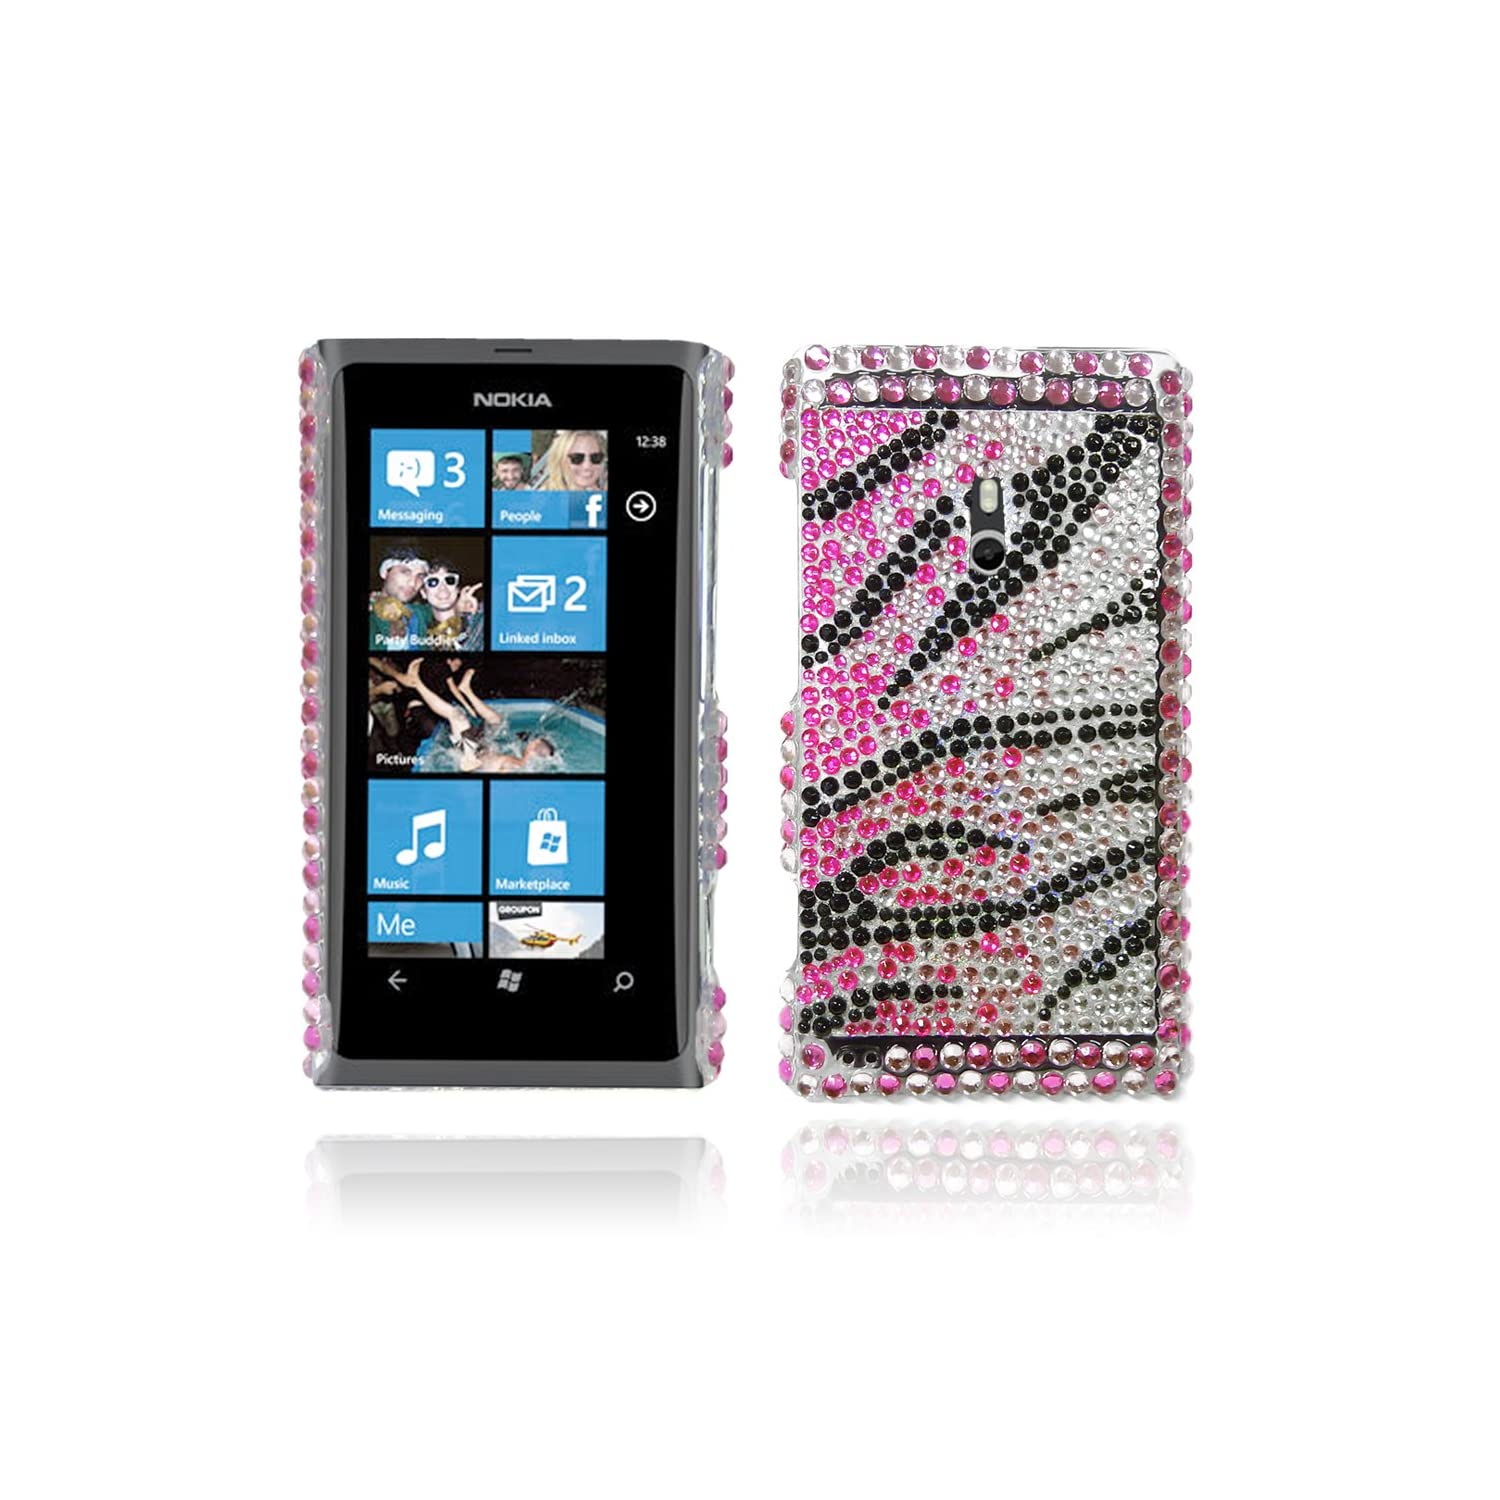 LOVE MY CASE / Nokia Lumia 800 Pink, Clear & Black Diamond Phone case / NEW